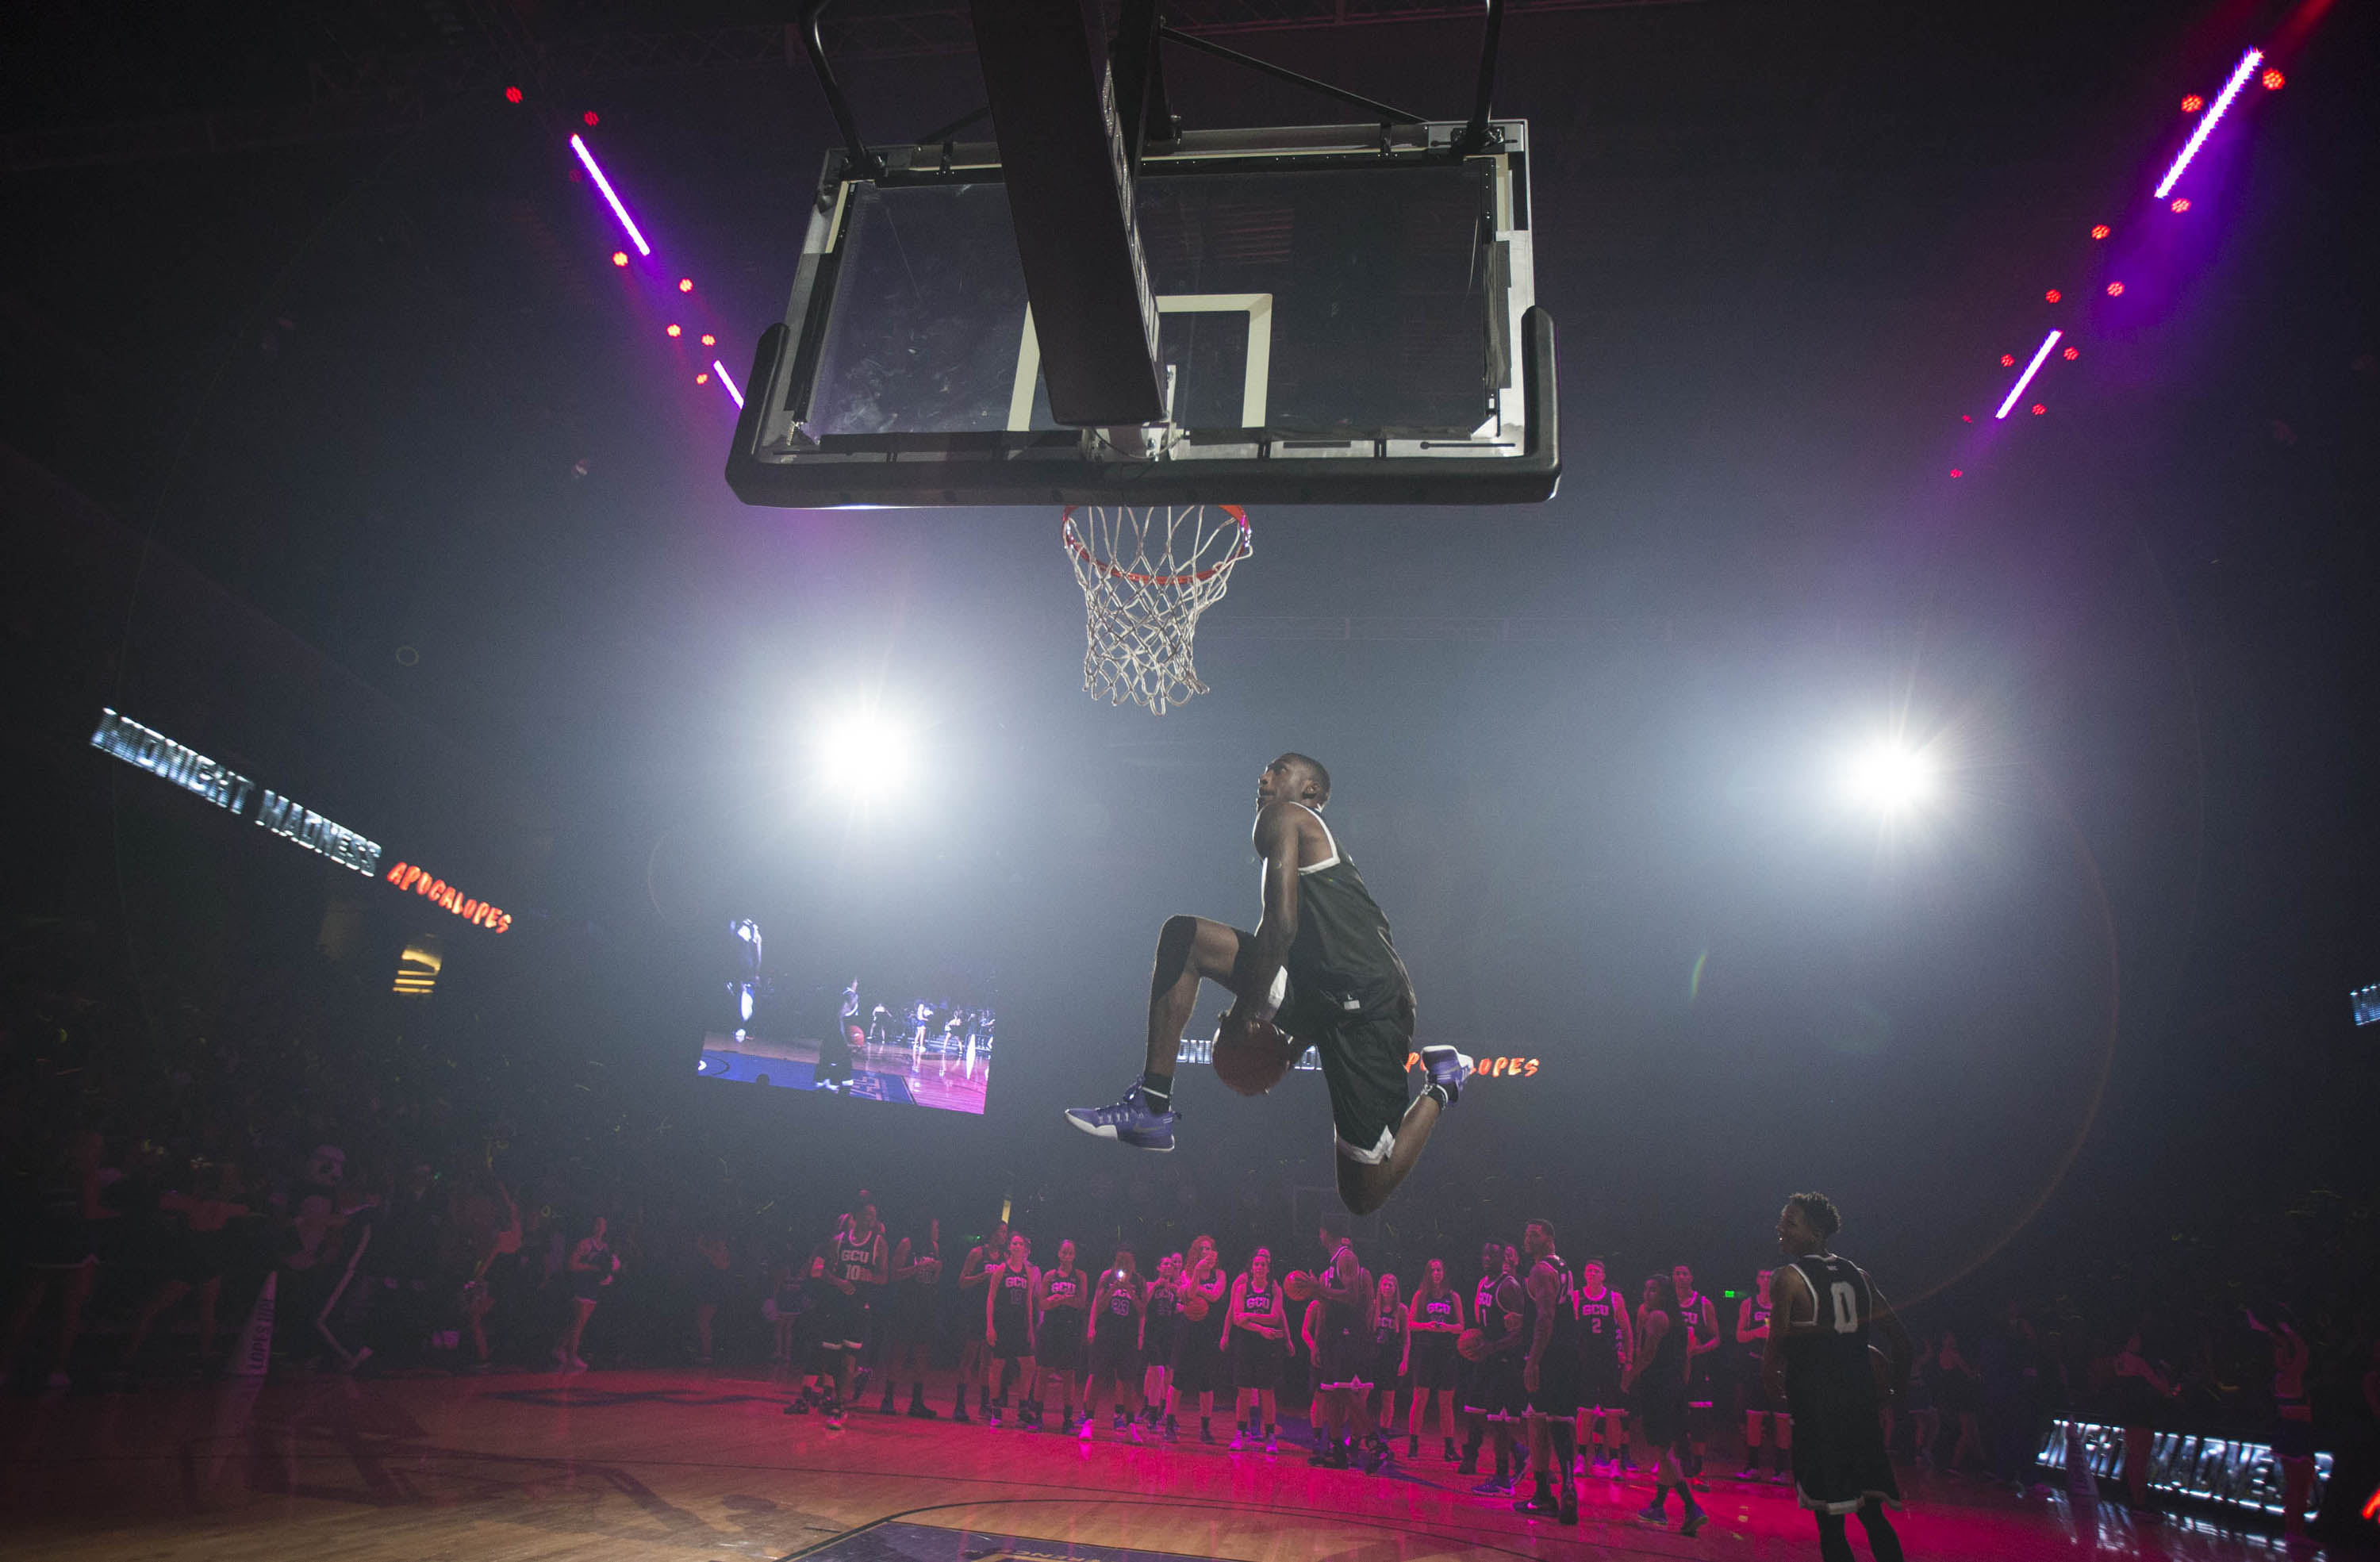 Slideshow: Midnight Madness sizzles with fun - GCU Today